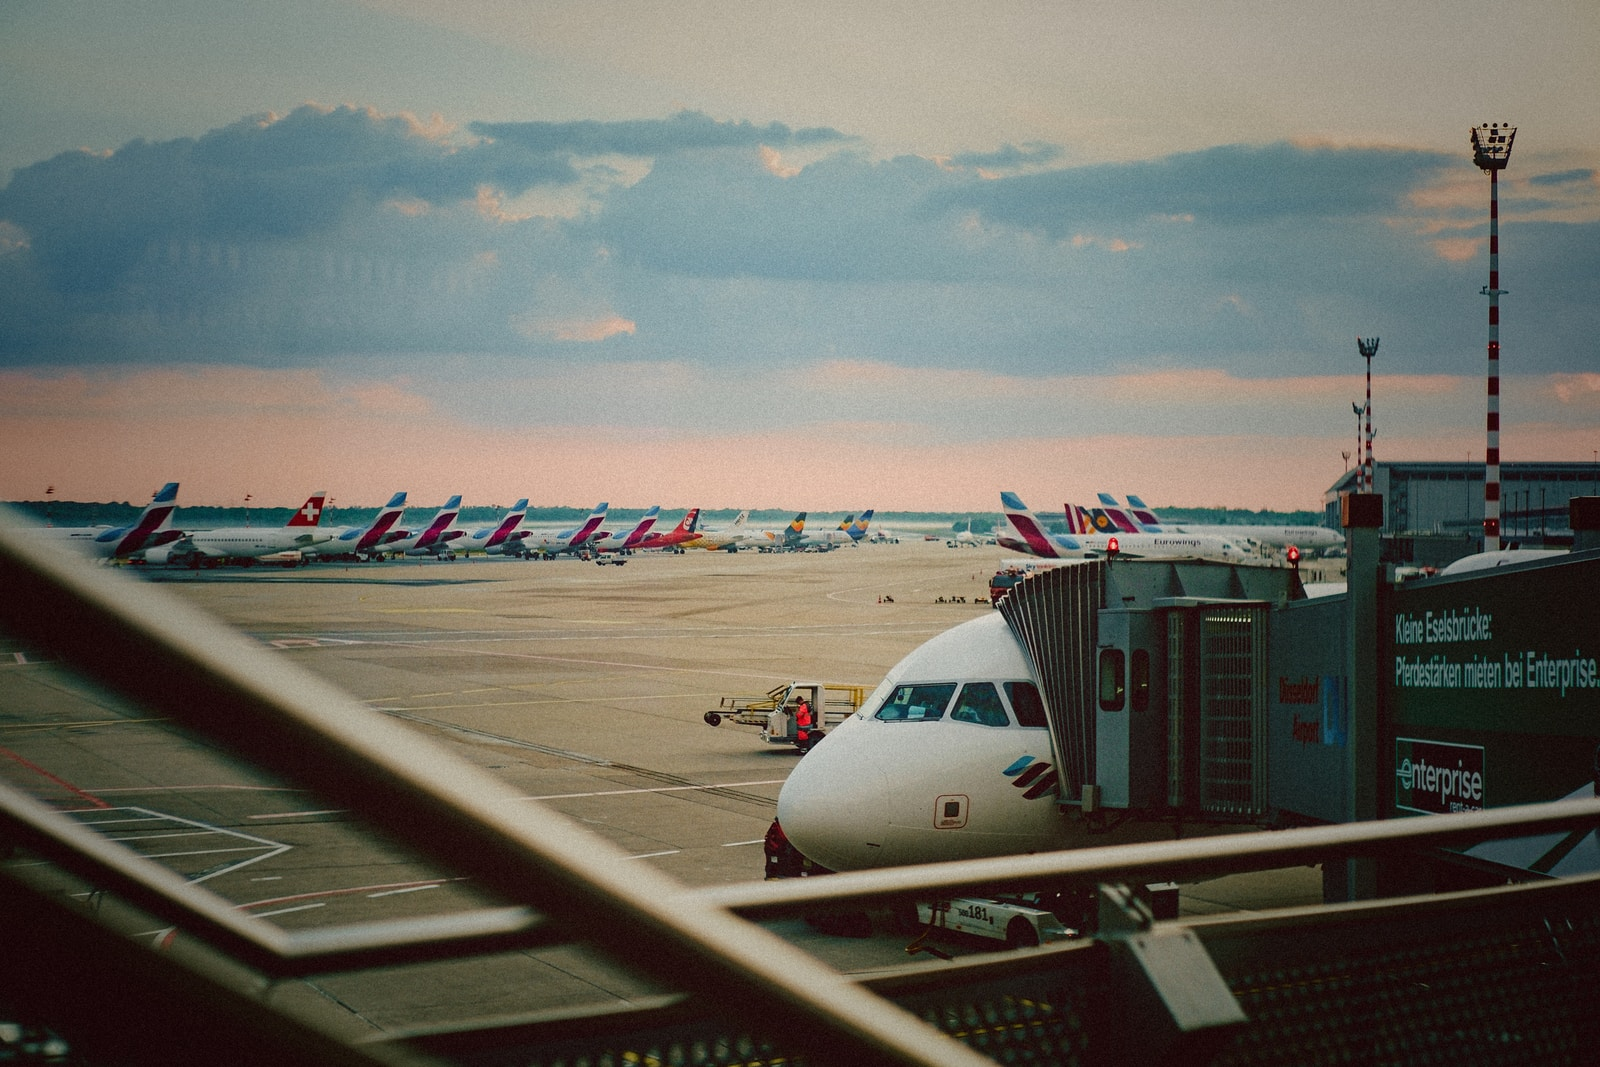 airliners at the airport during day